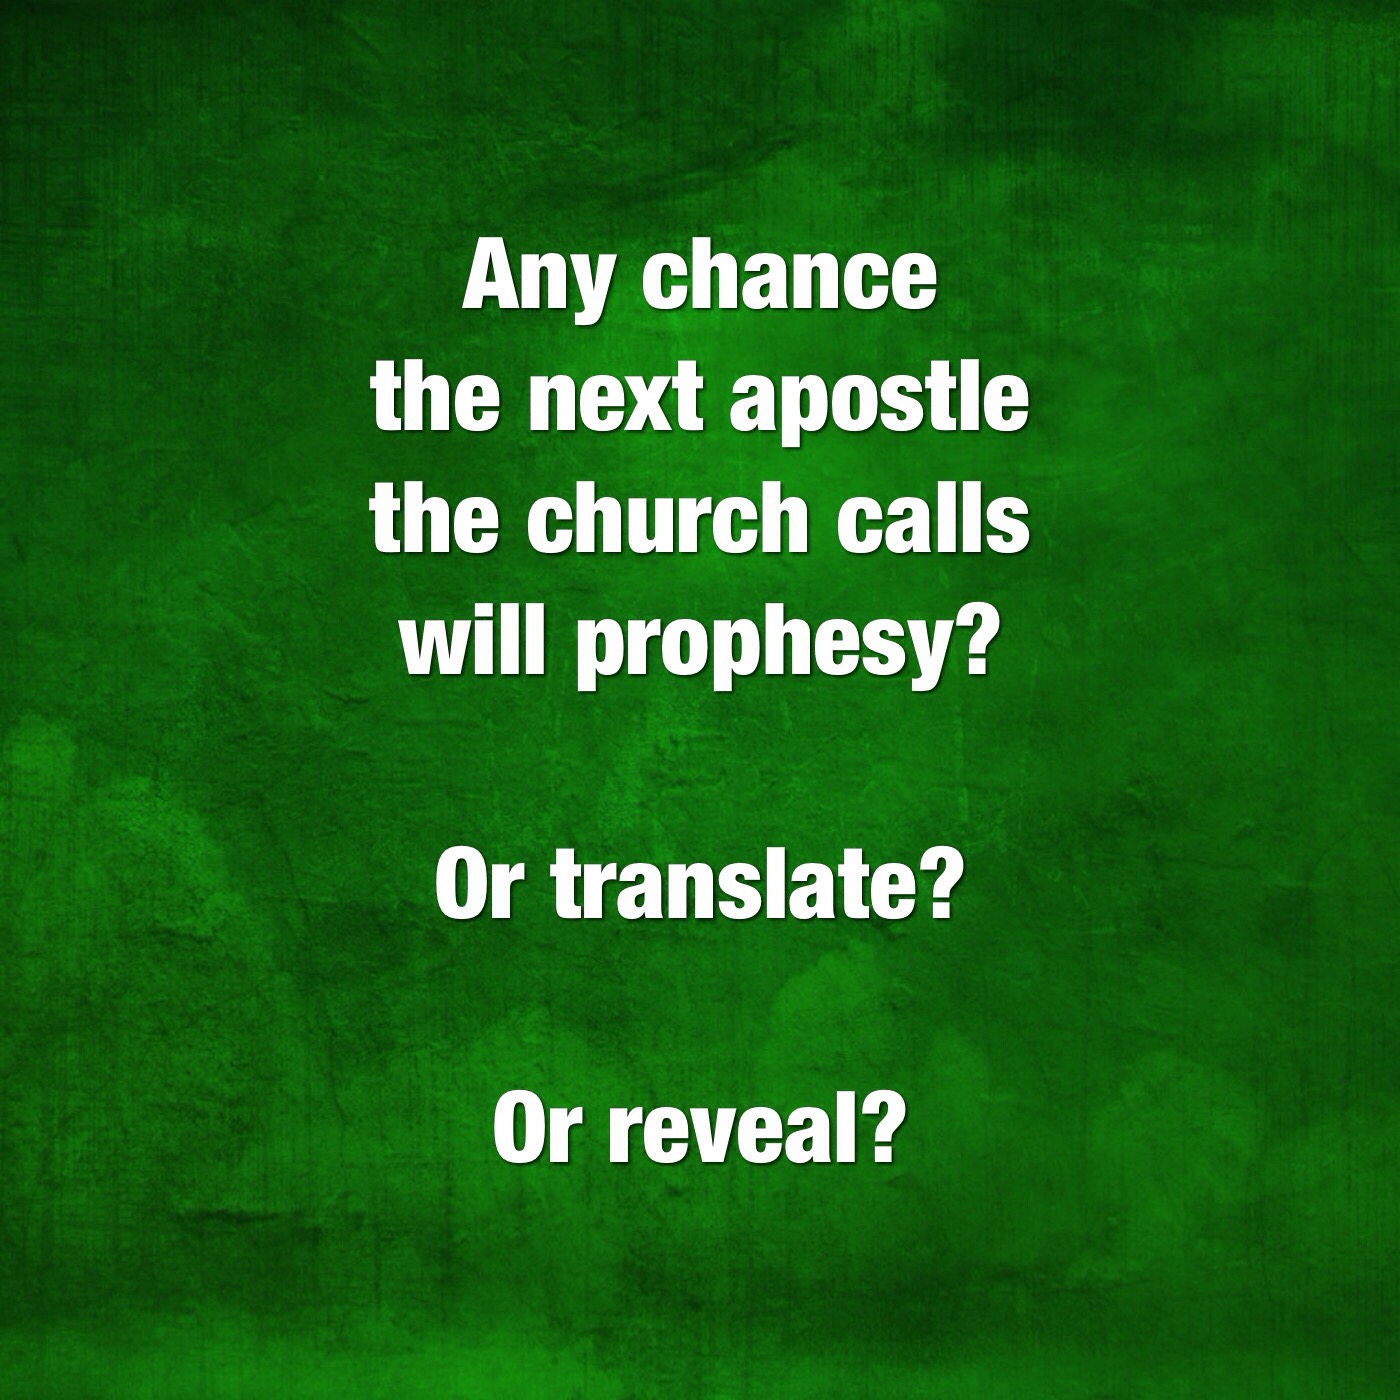 Will he prophesy?